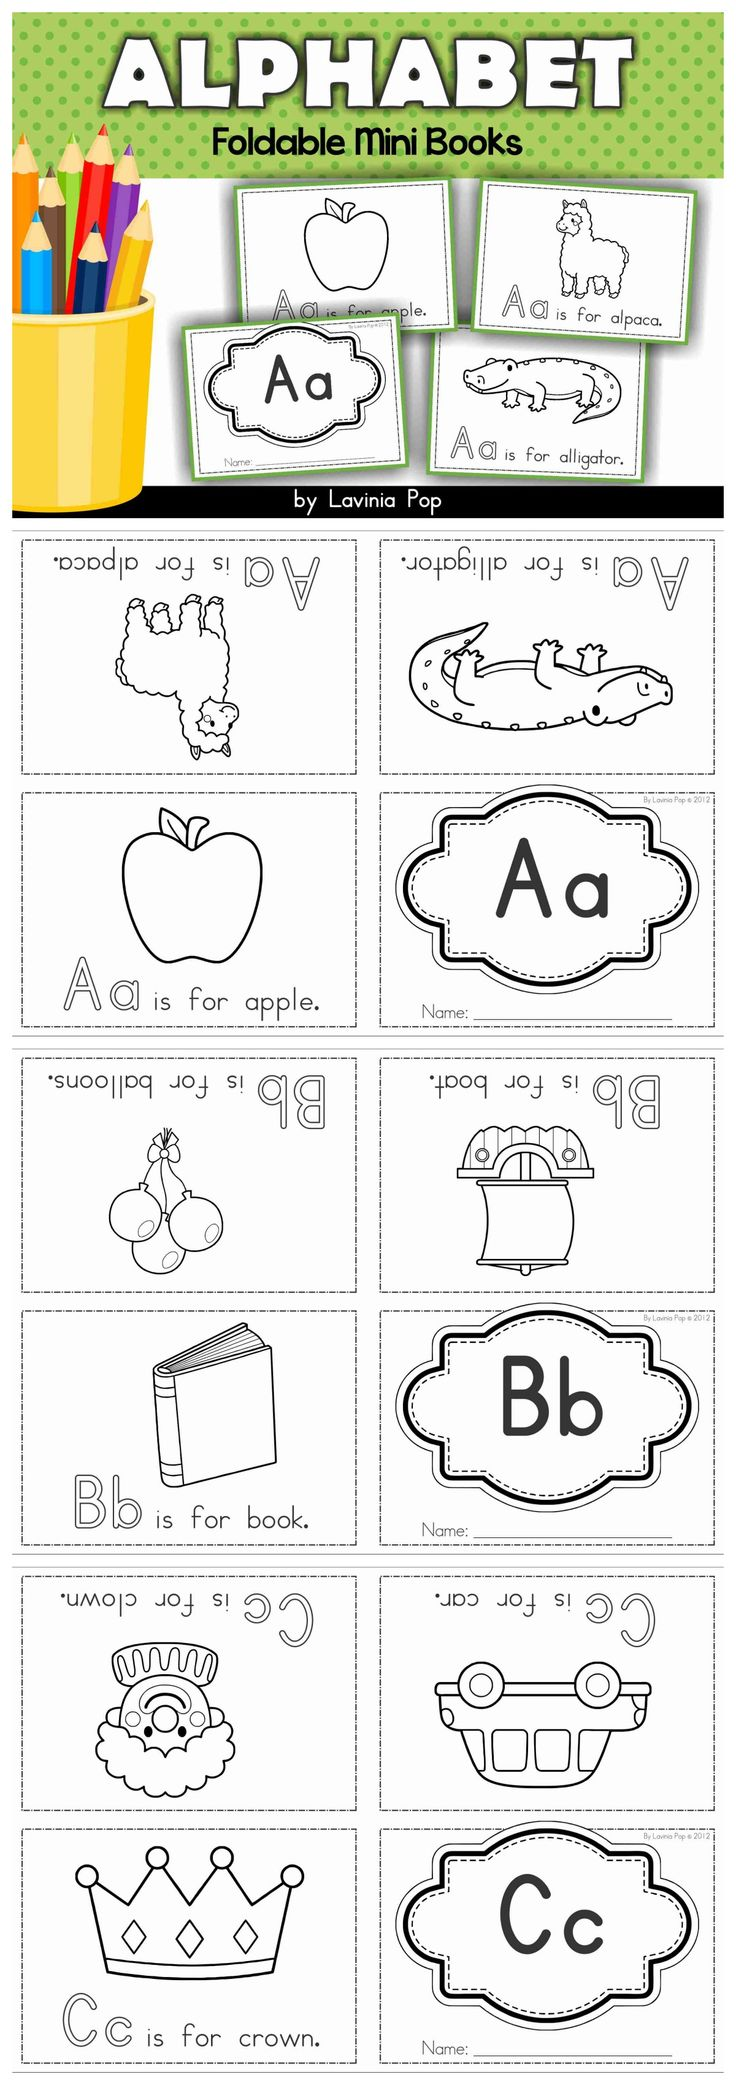 Alphabet Foldabe Mini Books. No cutting and stapling required - just fold and you're ready to go!